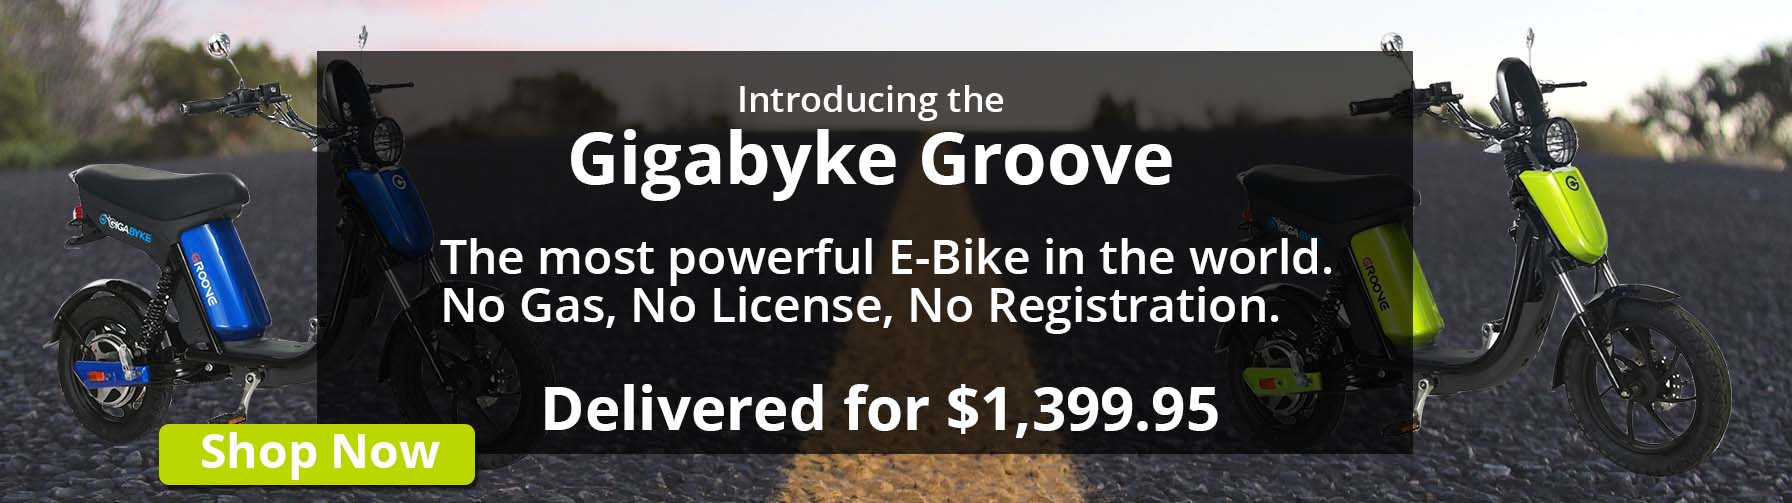 Introducing the Gigabyte Groove - The most powerful E-Bike in the world. No Gas, No License, No Registration. - Delivered for $1,399.95